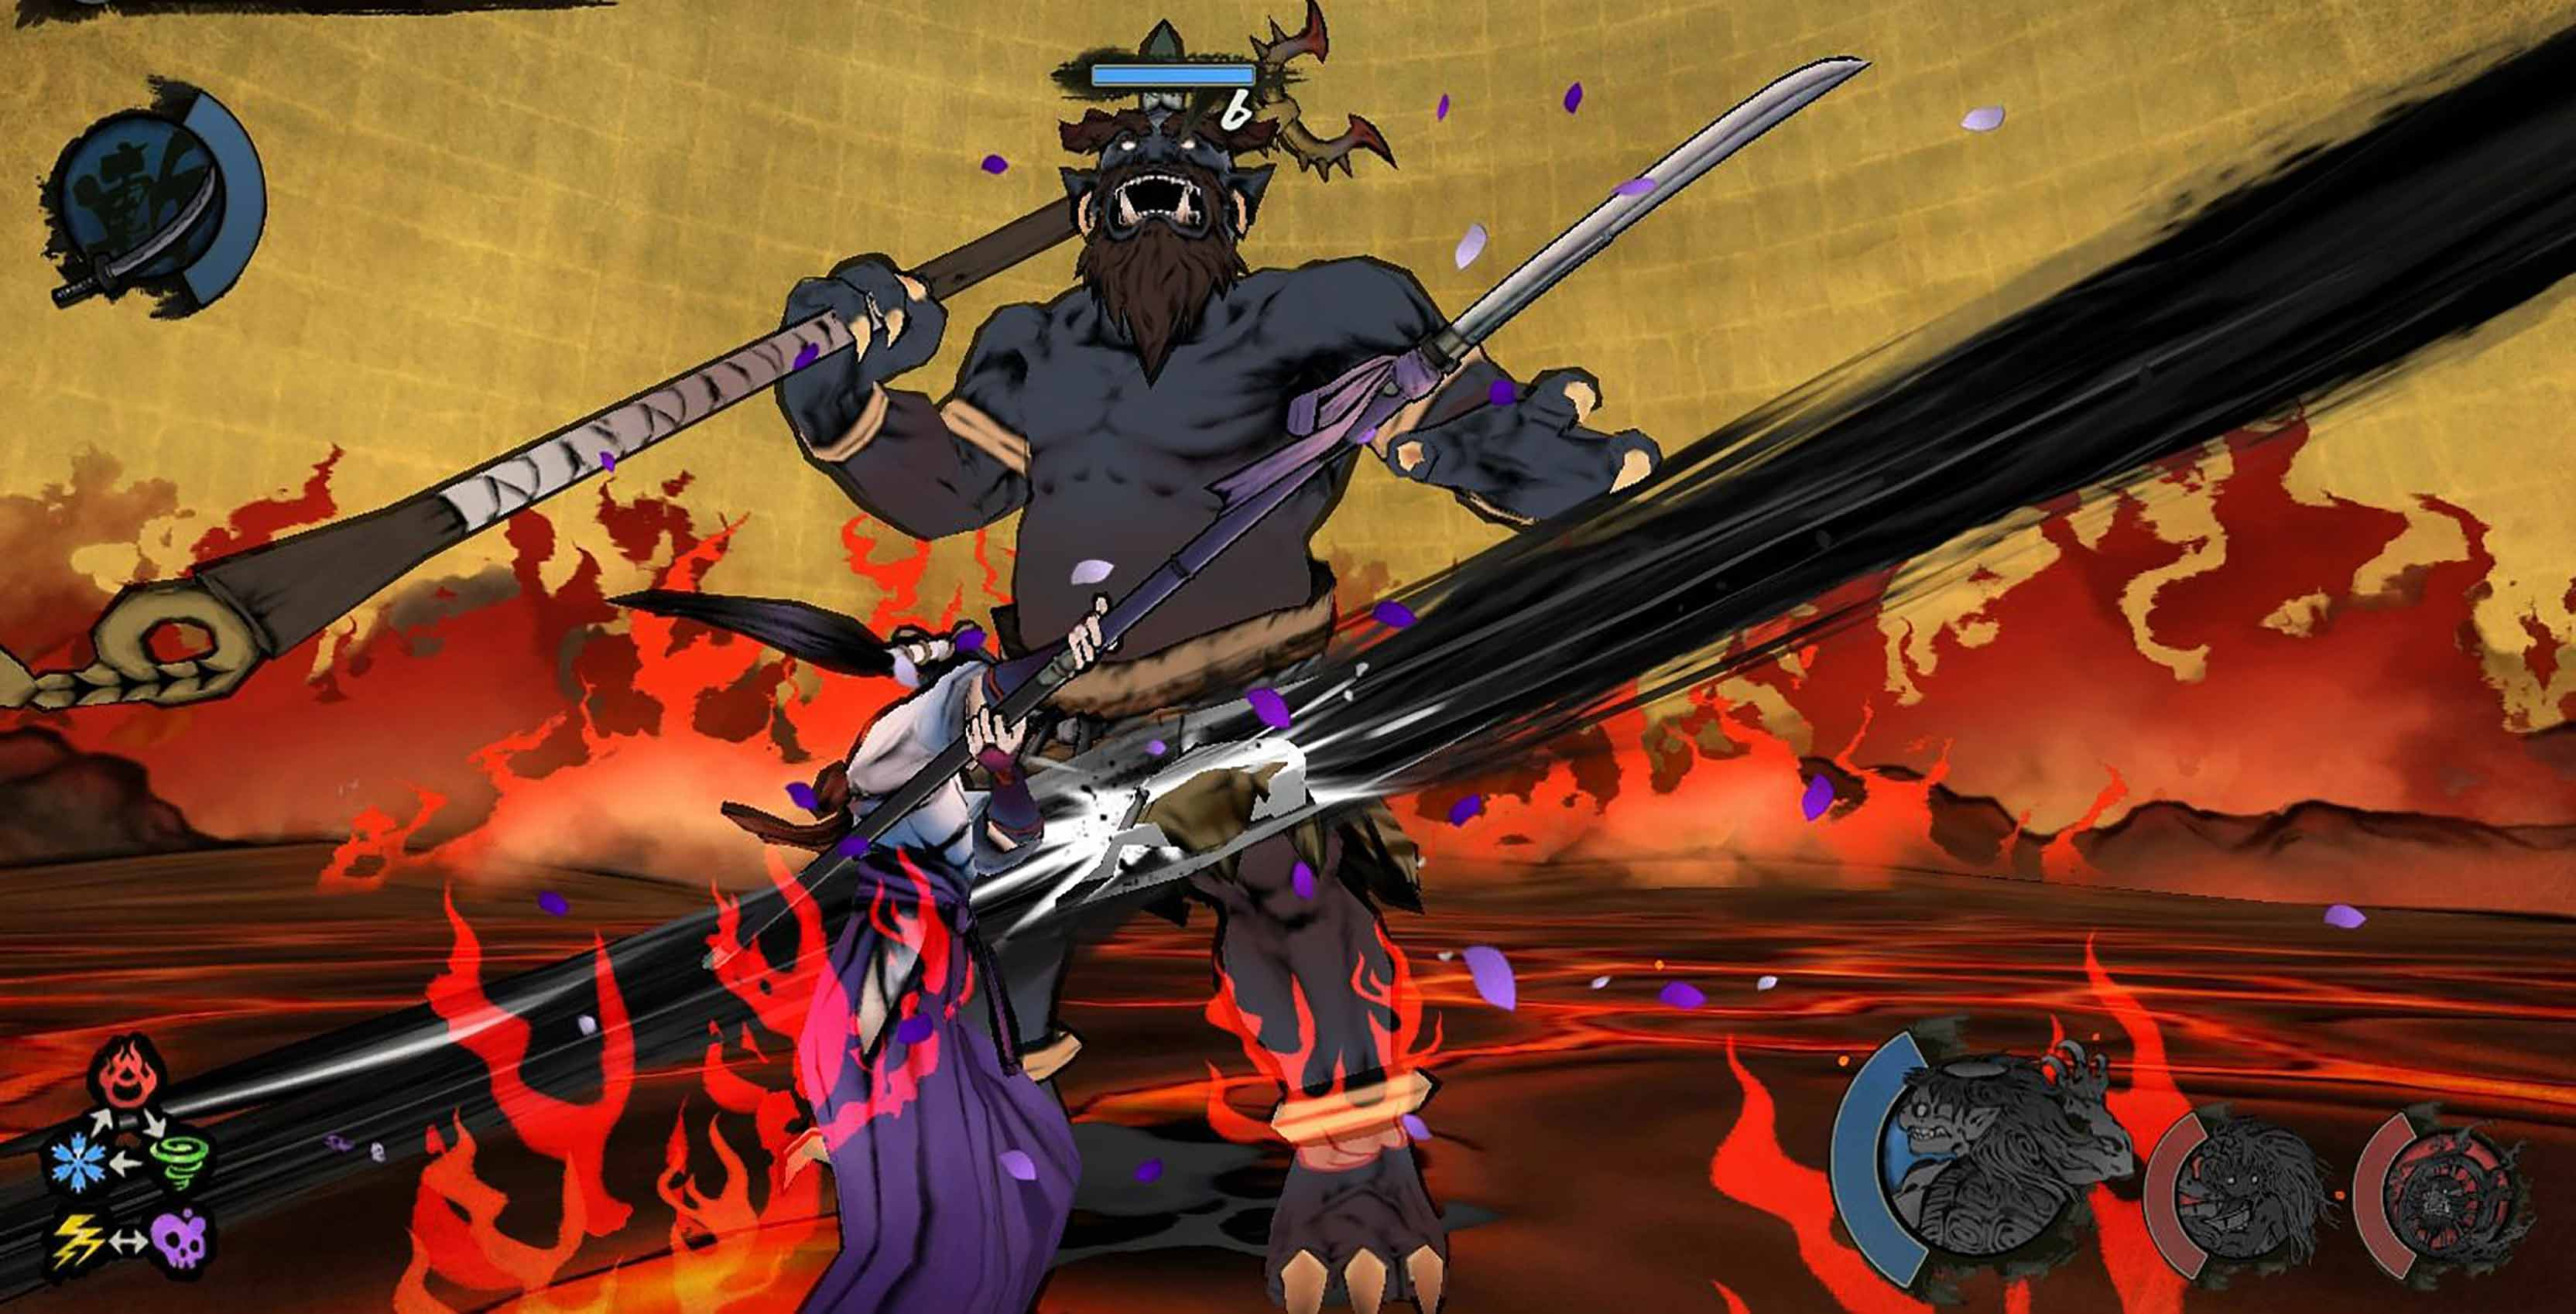 World of Demons mobile game combat